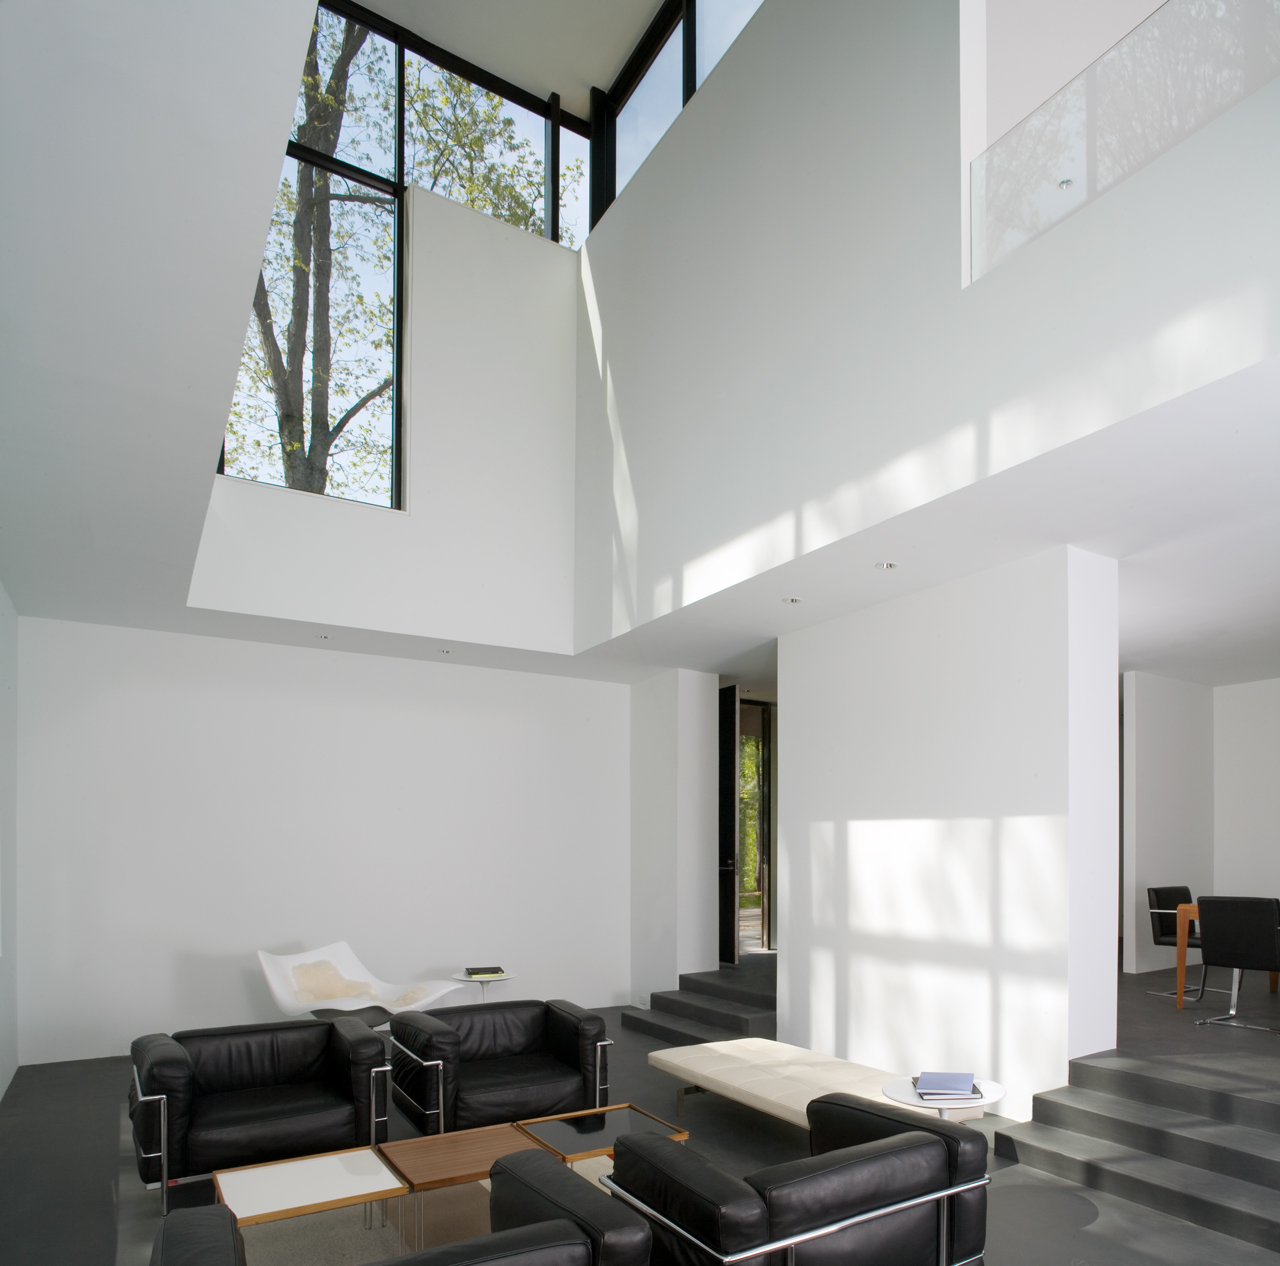 Gallery of black white residence david jameson architect 7 - The edgemoor residence by david jameson architect ...